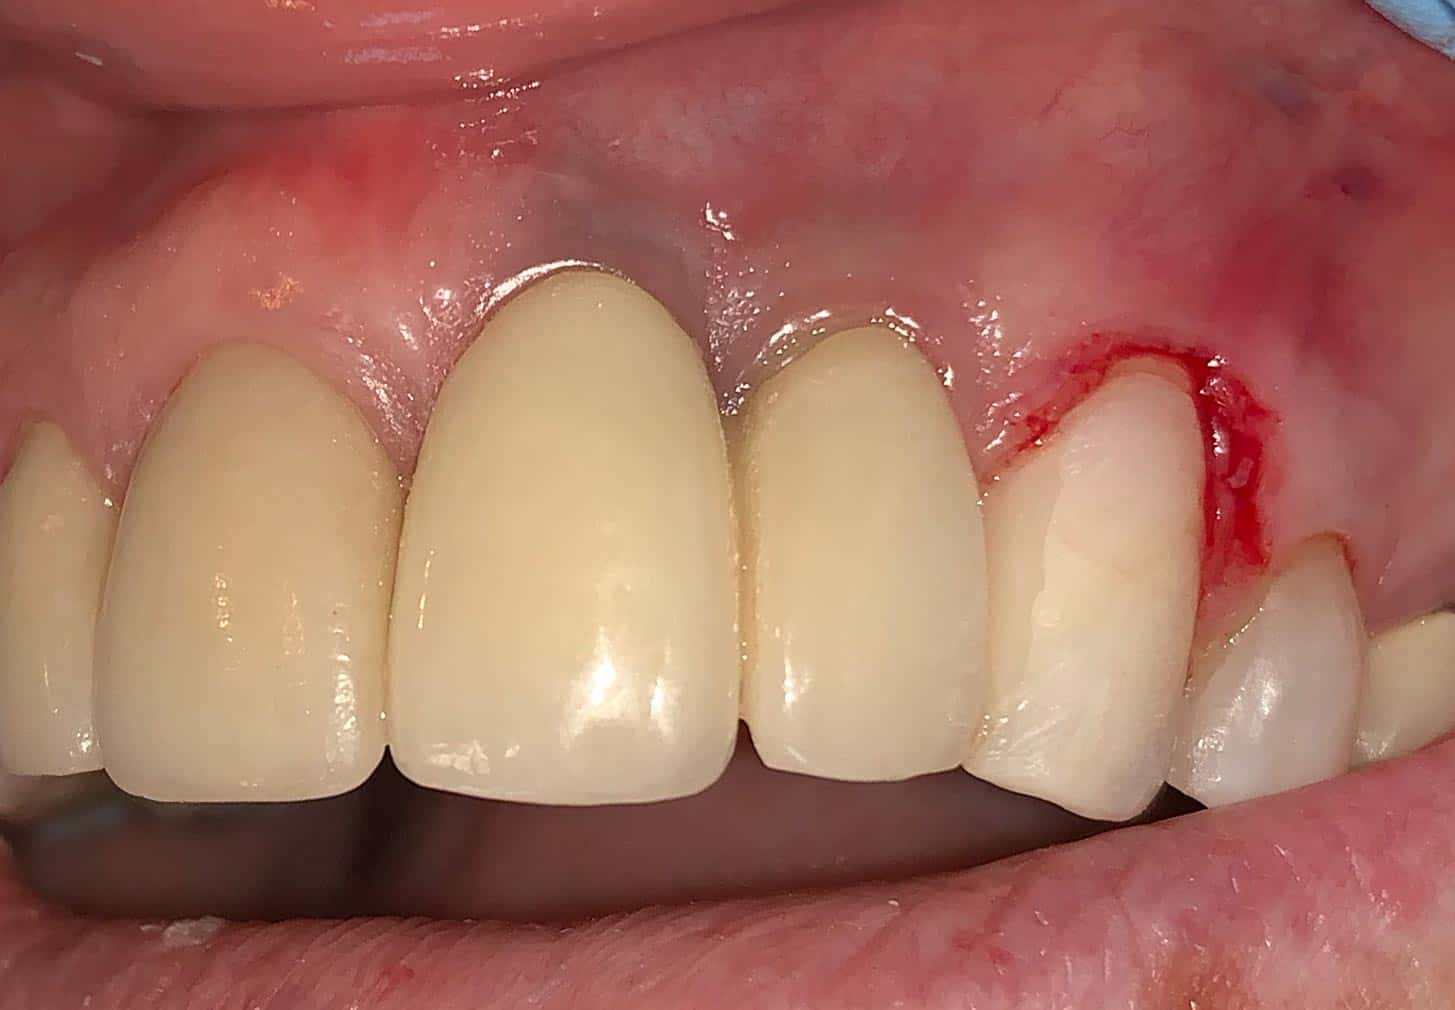 Metal implant showing grey under the gum